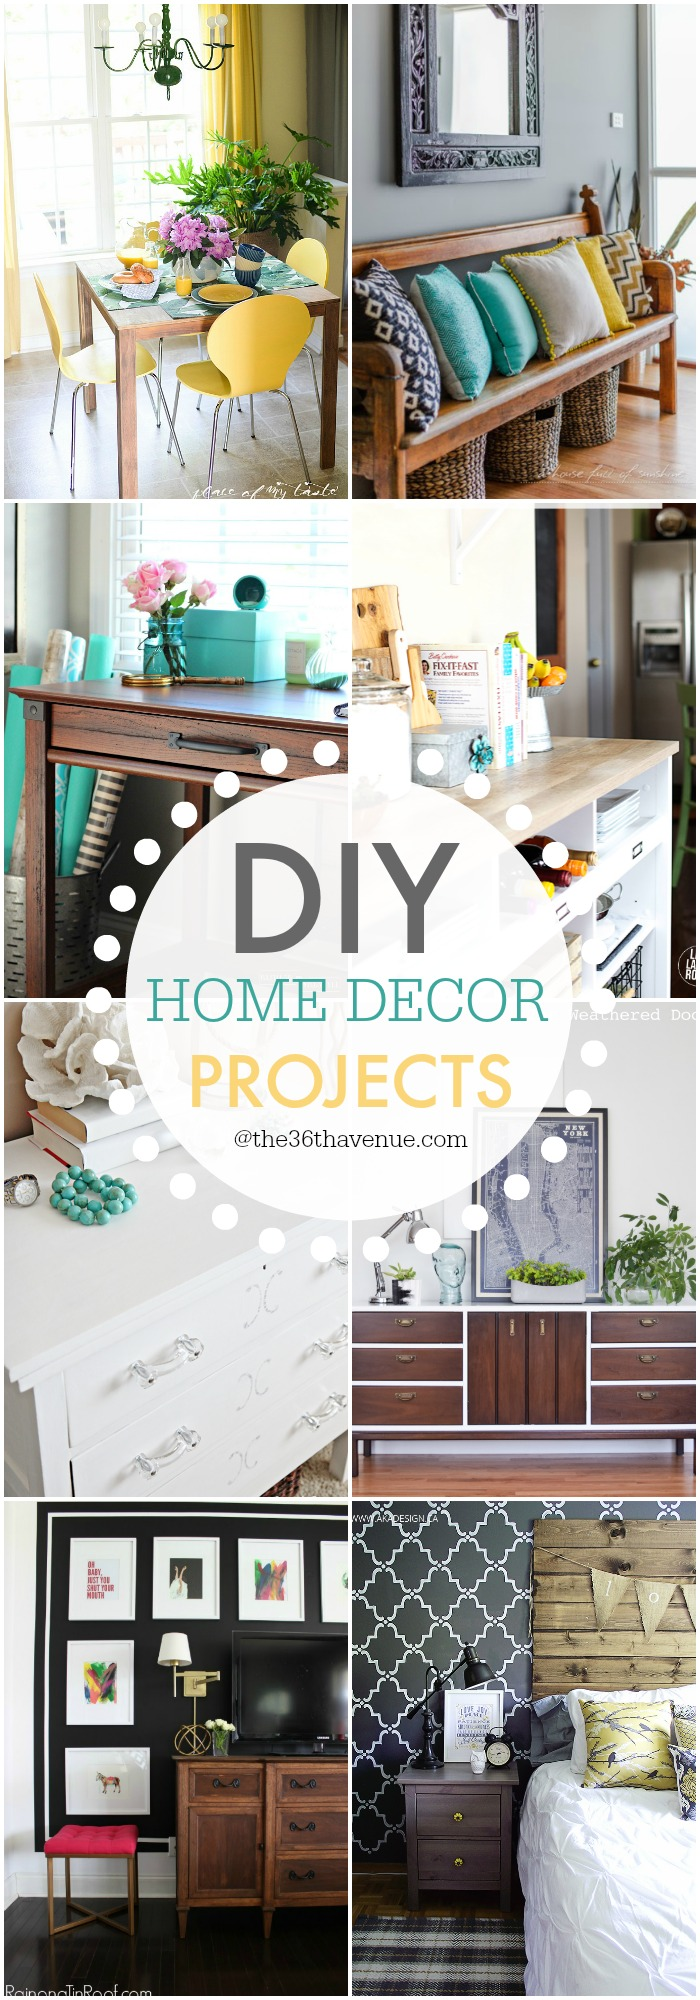 Great Ideas For Home Decor The 36th Avenue Diy Home Decor